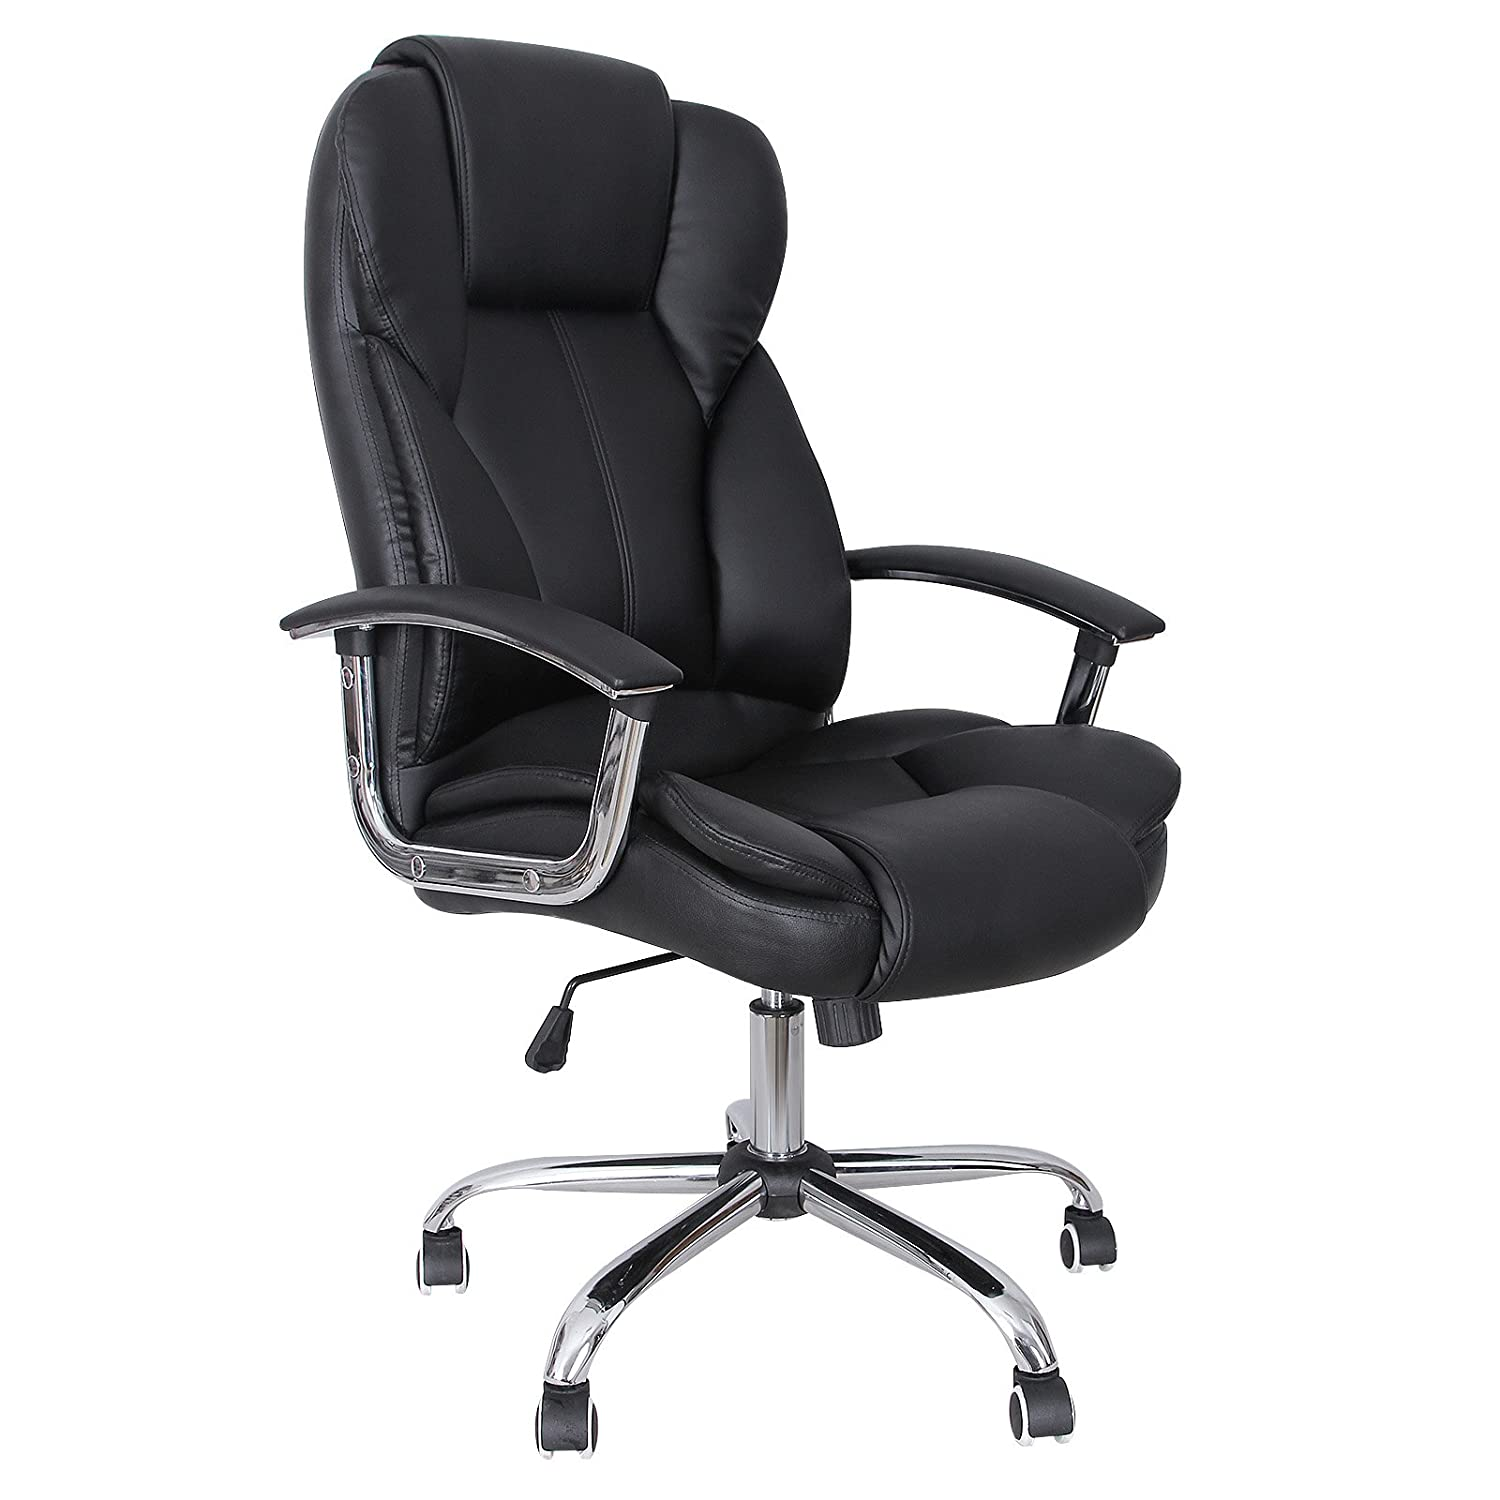 computer chairs ergonomically for explode ebay size near correct full of office me chair relaxing sale furniture